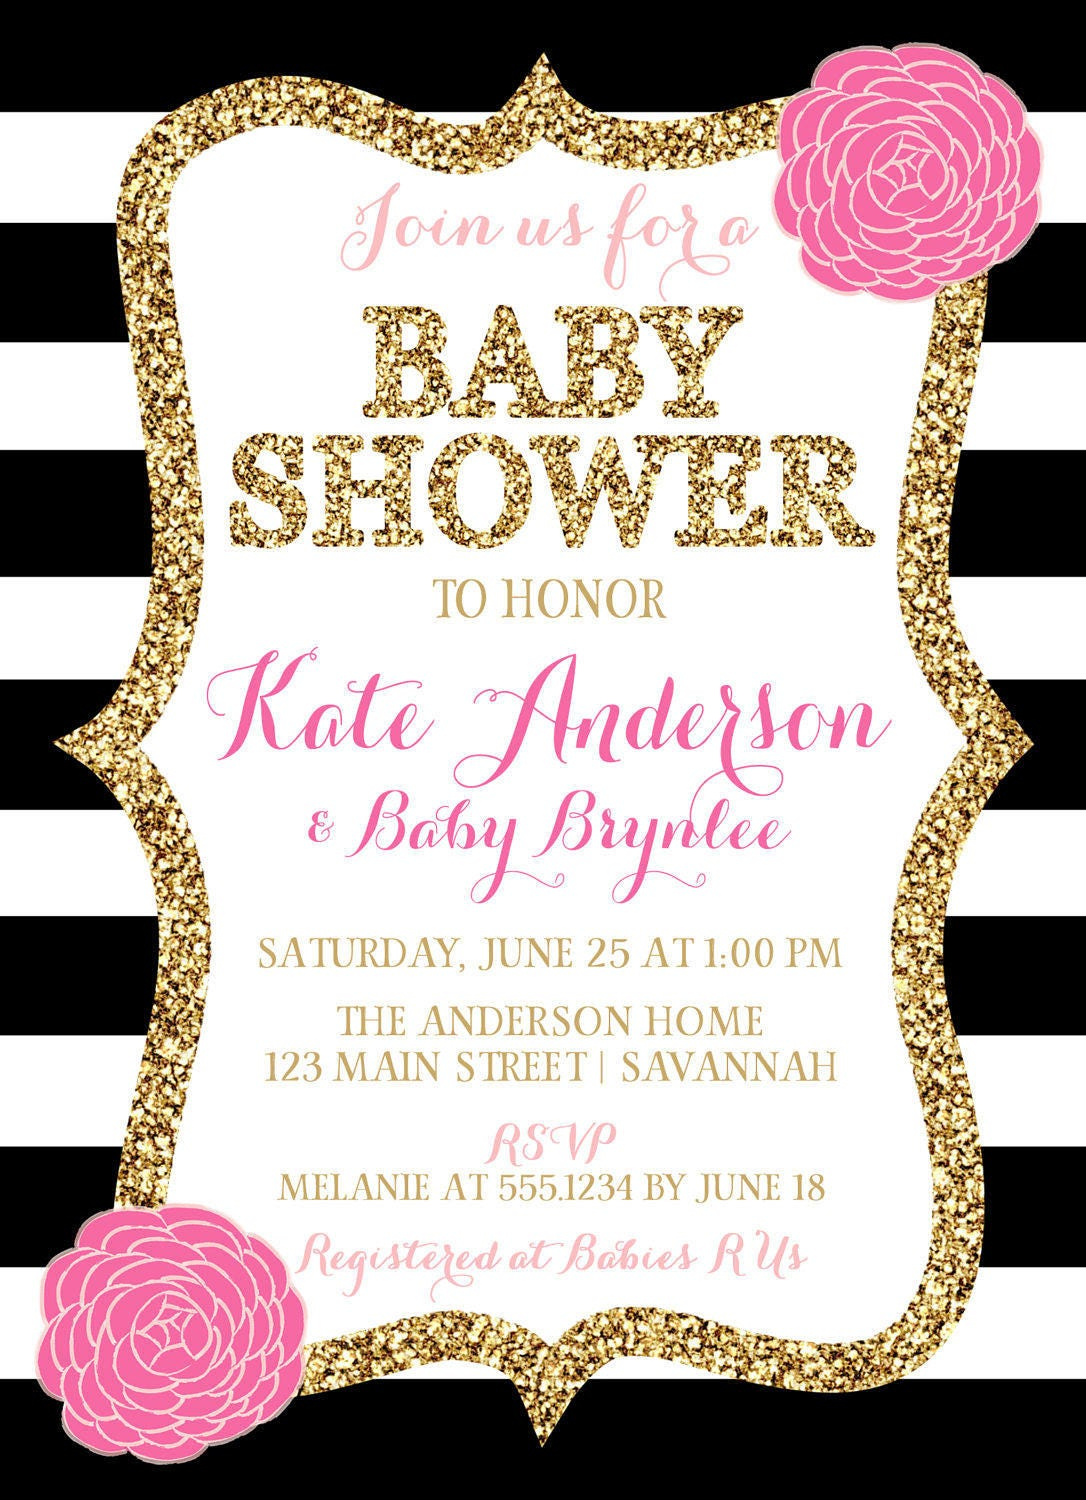 Pink Black And Gold Baby Shower Invitation, Pink Floral Baby Shower ...